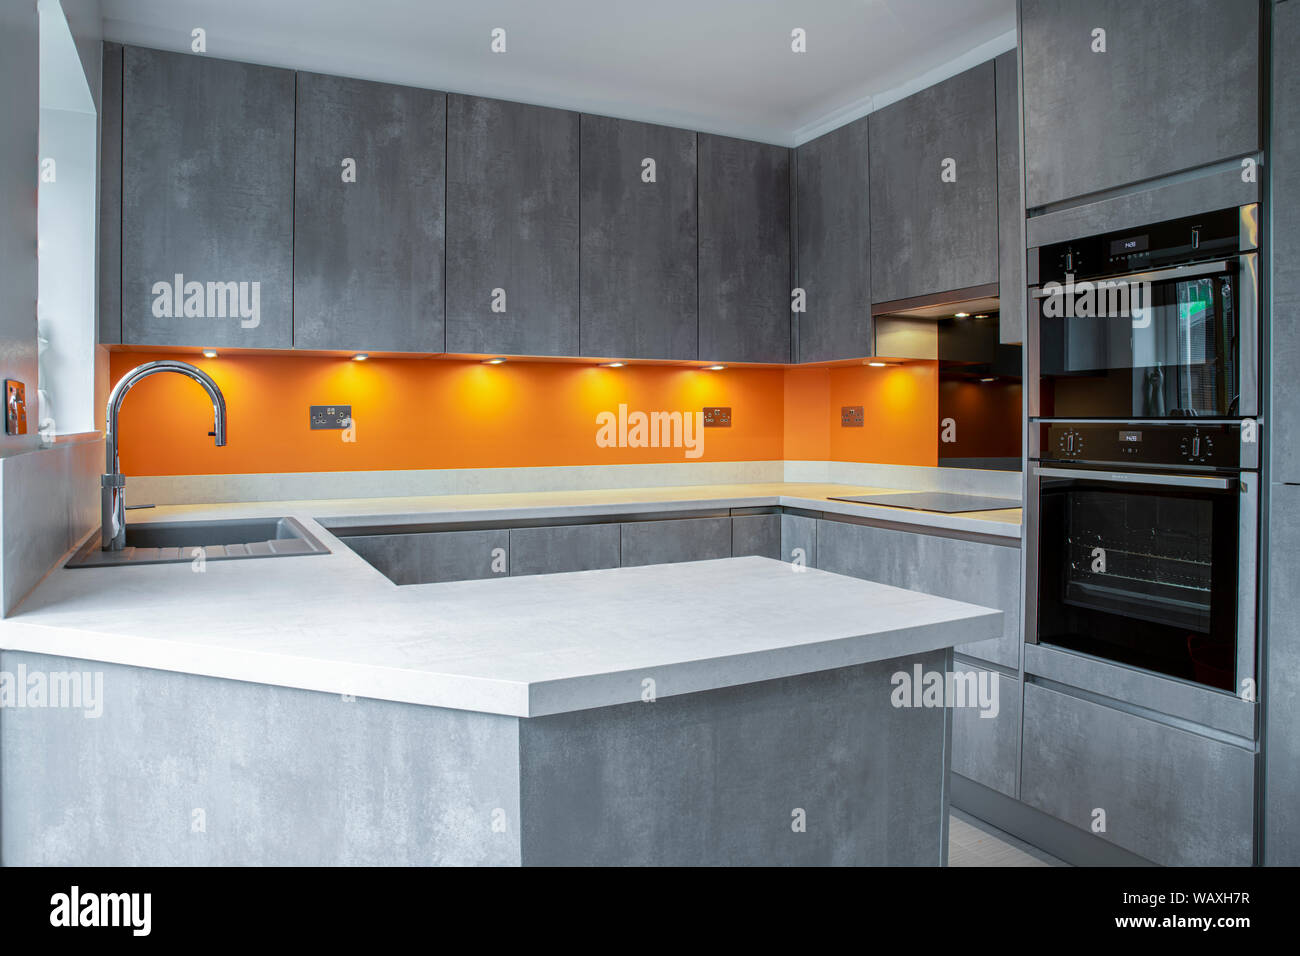 Black Tulip Dining Table, Grey Kitchen Cabinets High Resolution Stock Photography And Images Alamy